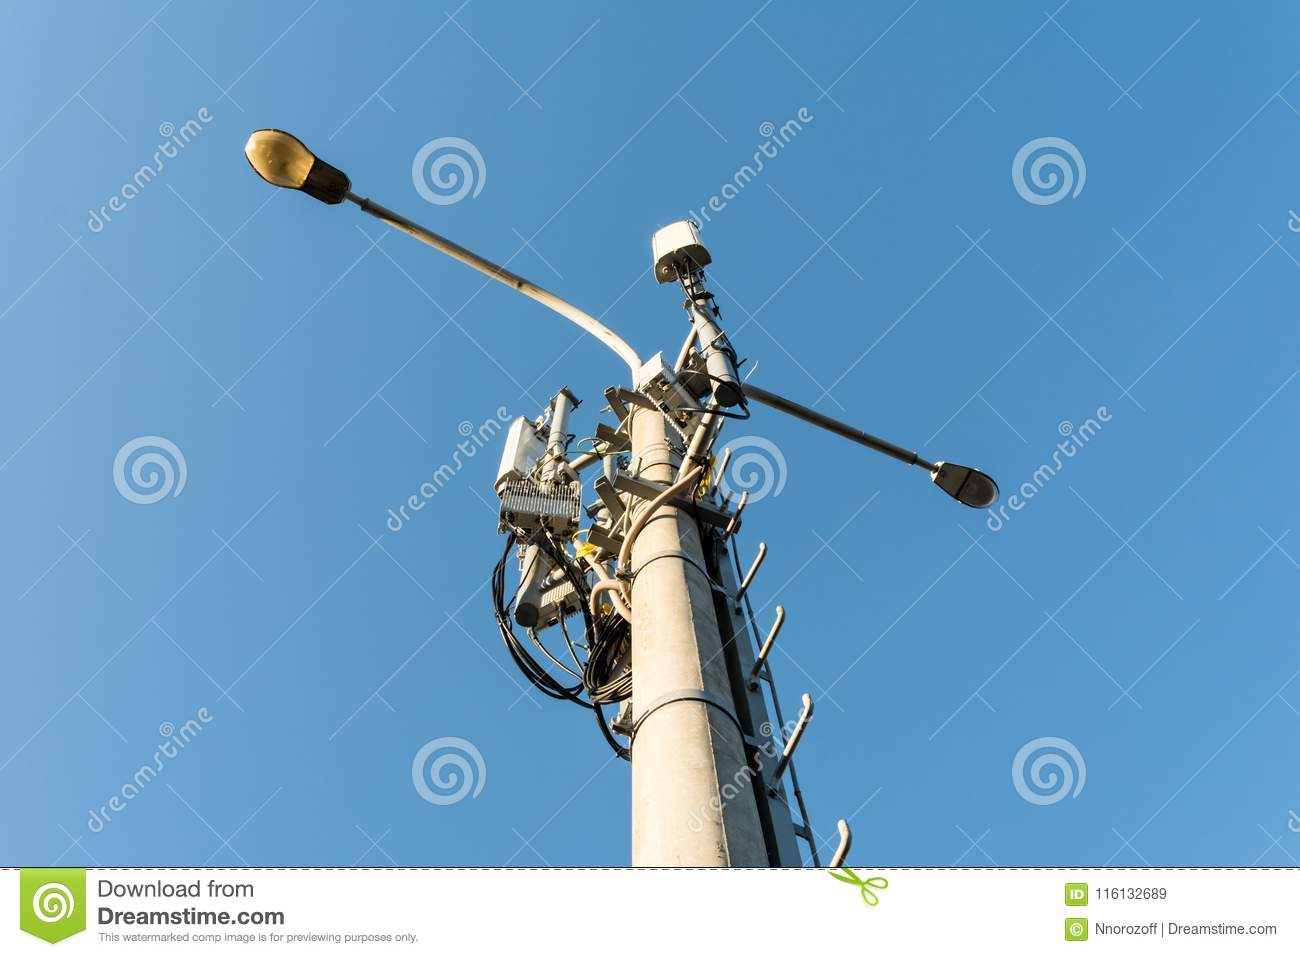 Equipment And Antenna Mobile Cellular GSM Standard Is